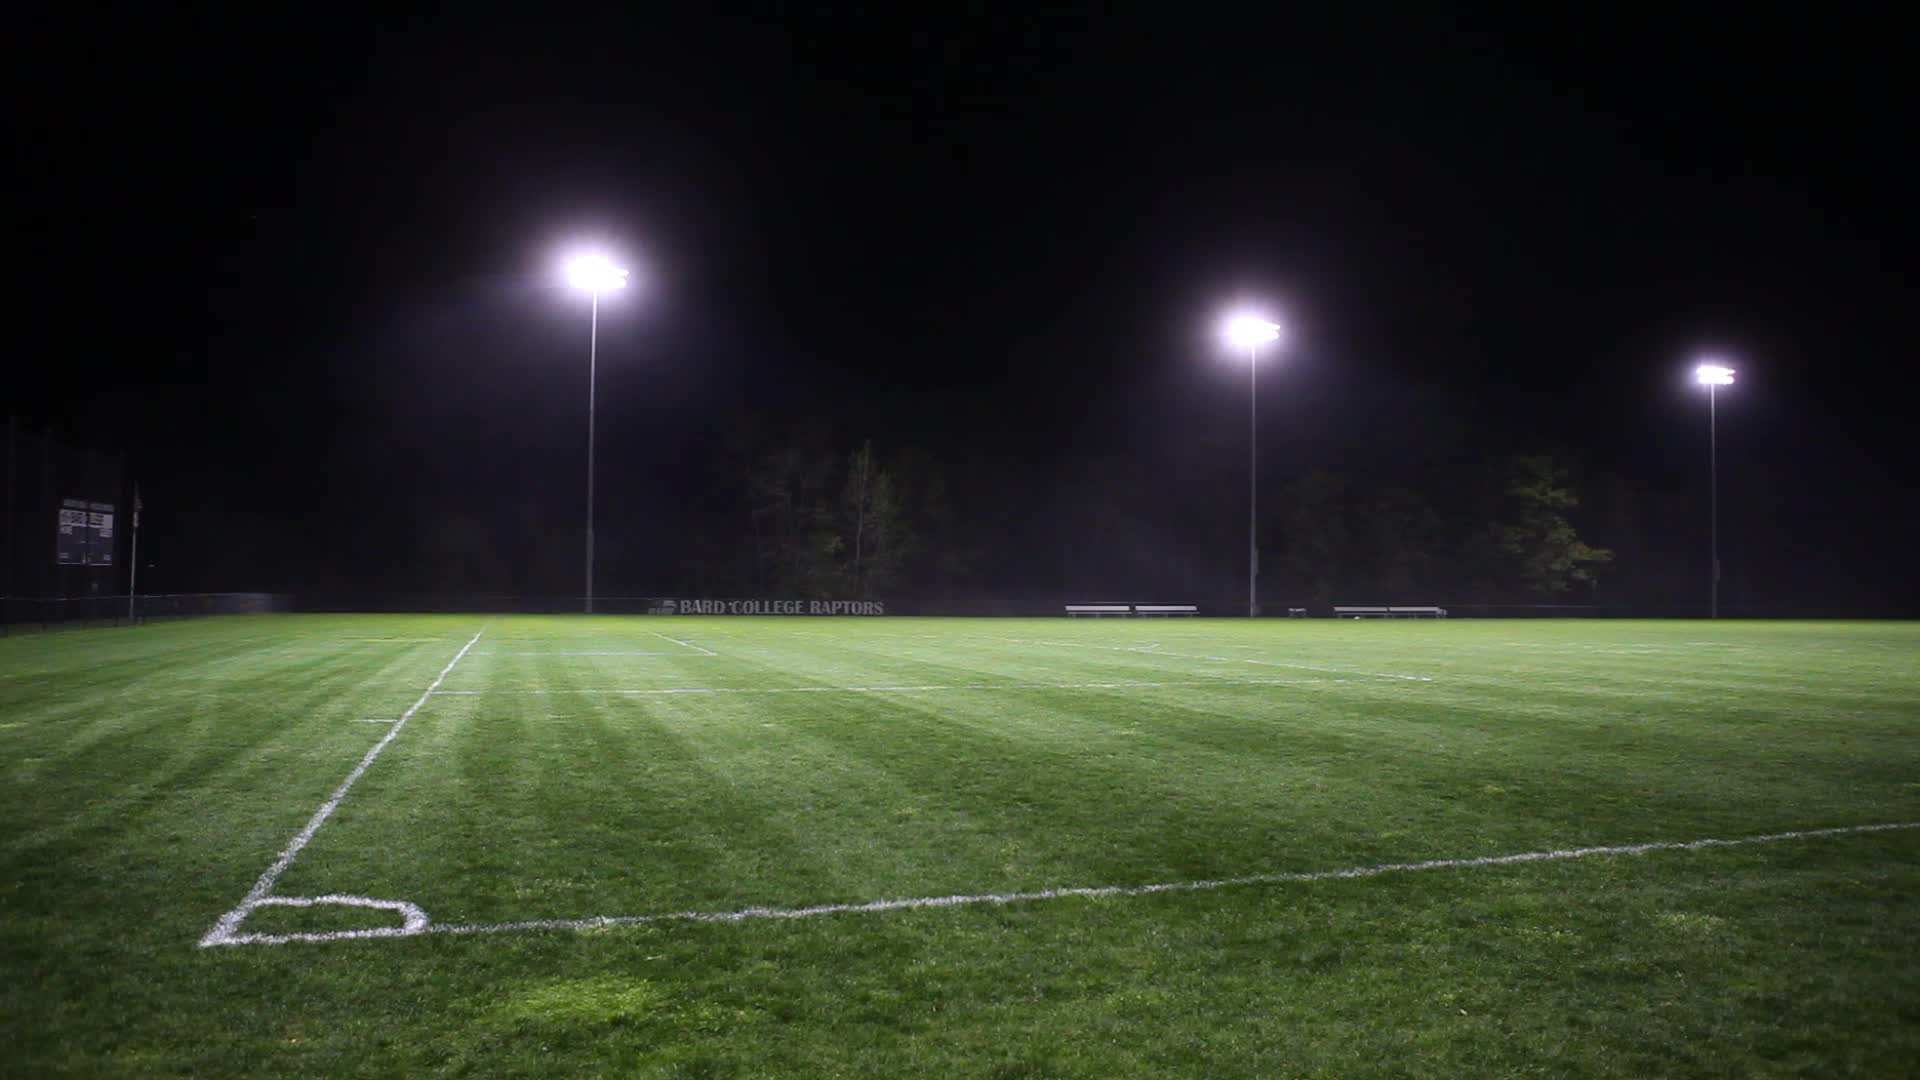 Soccer Pitch Stock Photos - Image: 322313